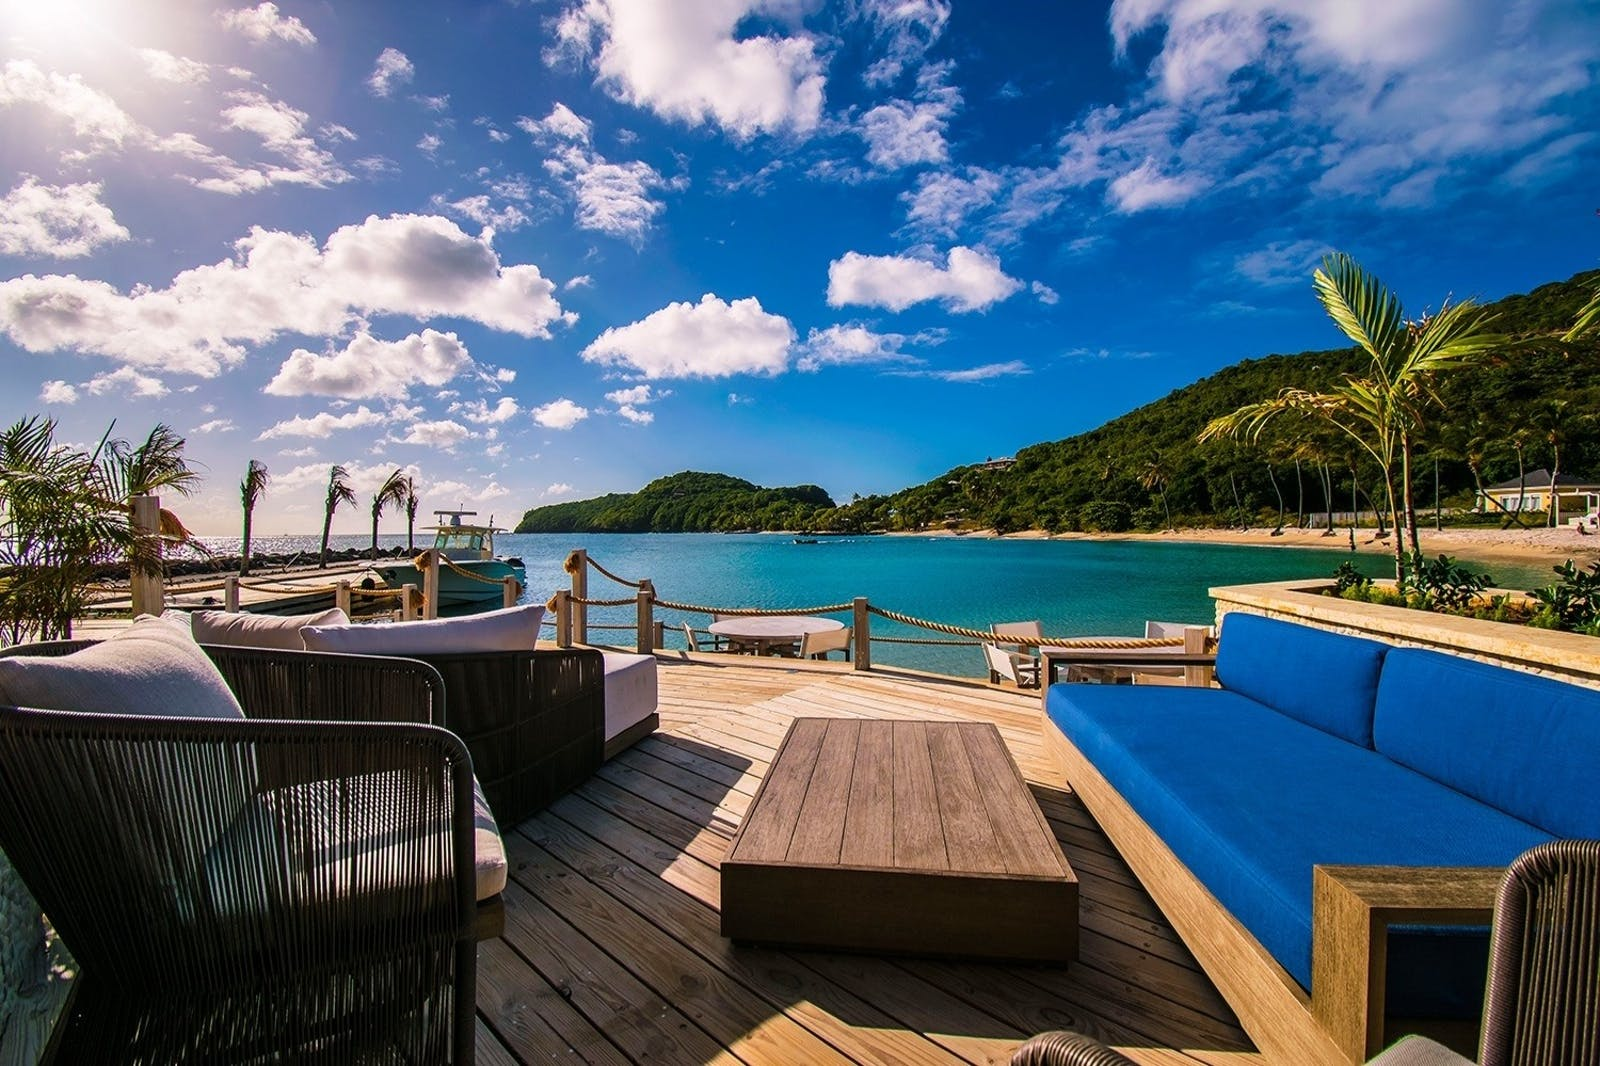 Decking View at The Liming, St Vincent & The Grenadines, Caribbean